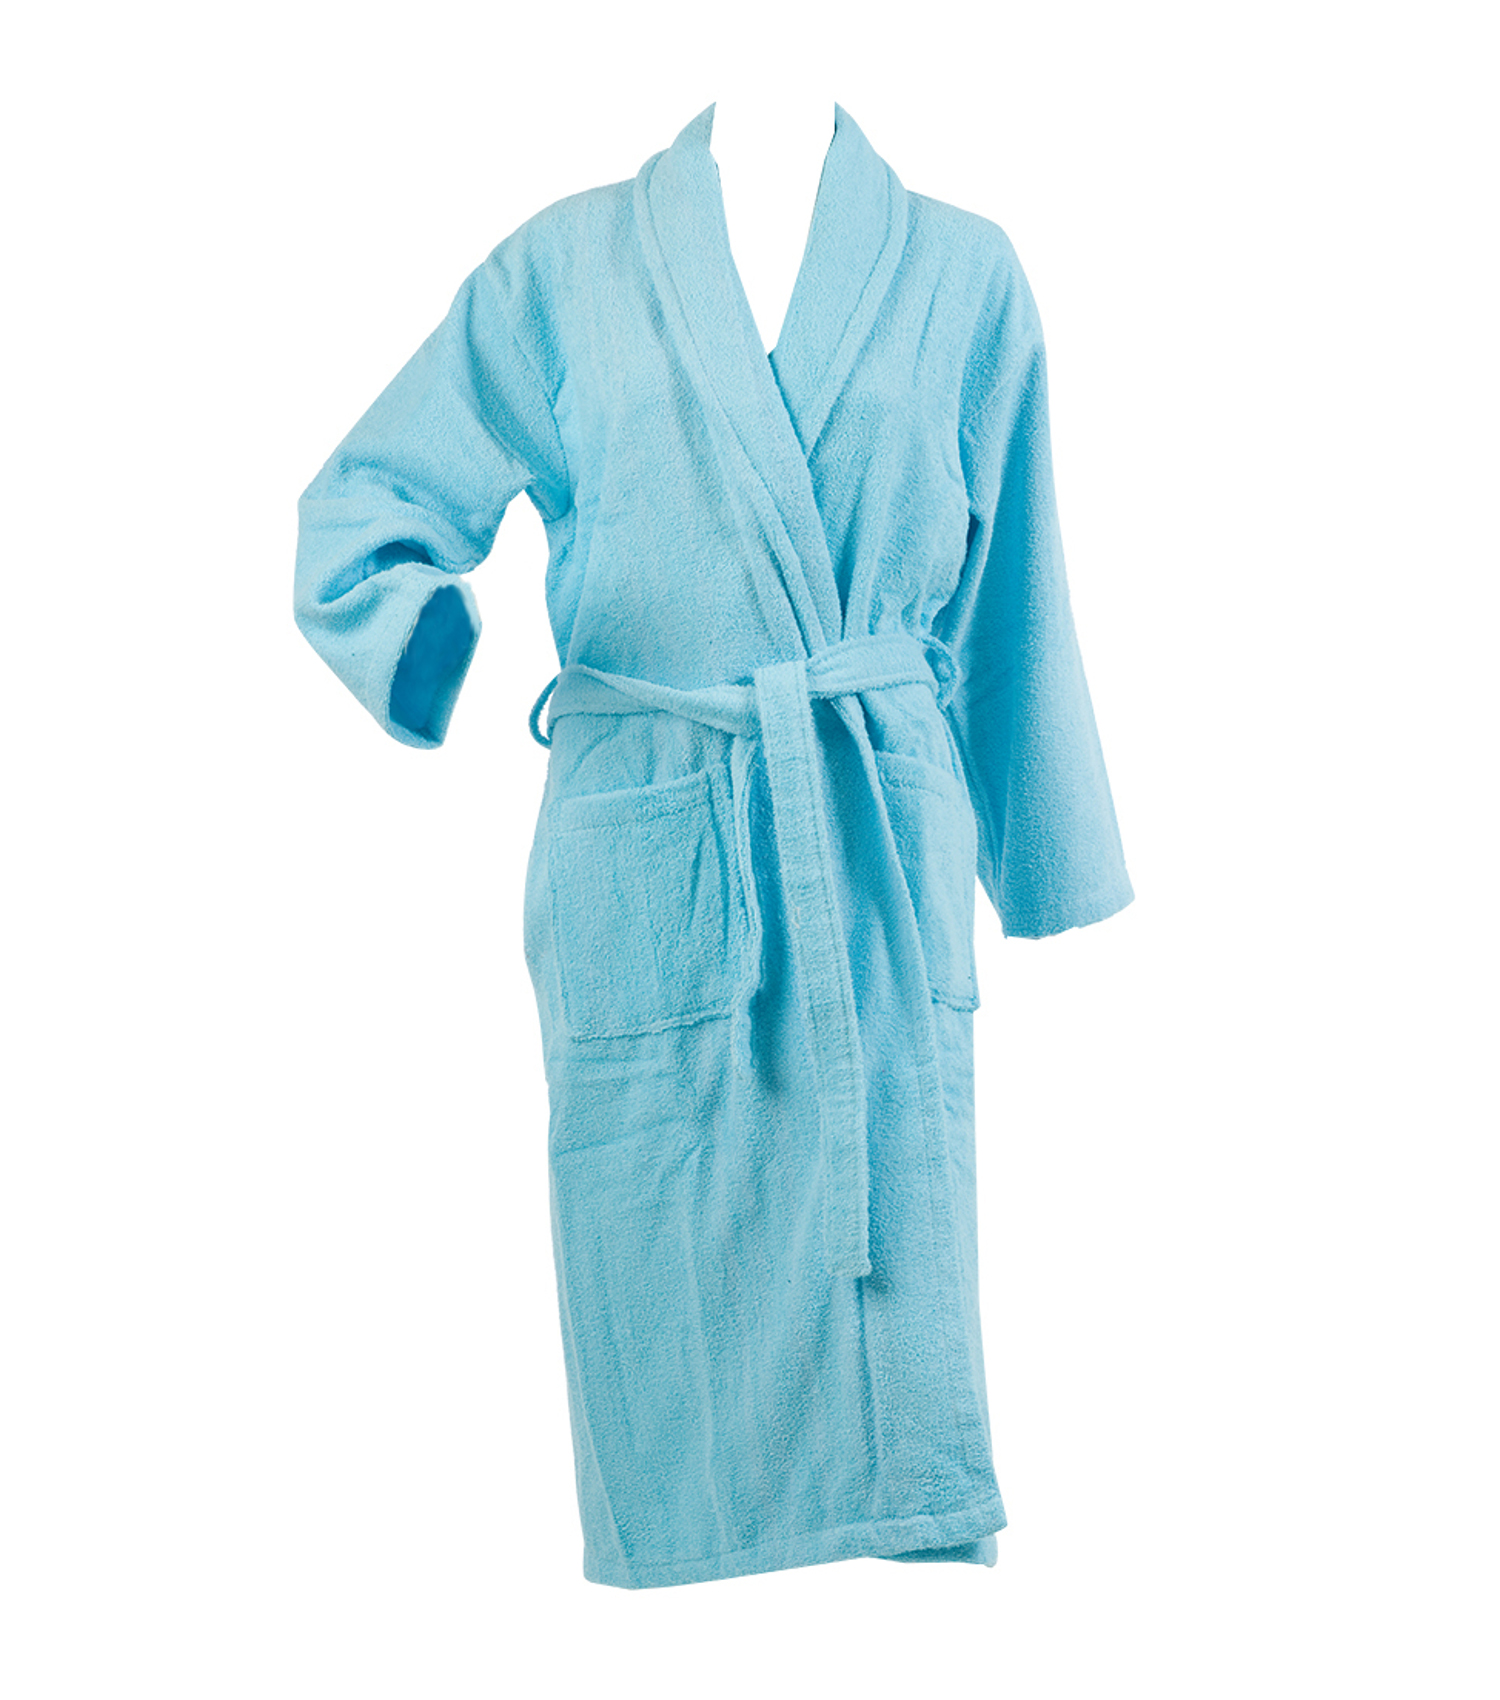 Ladies Plain Towelling Dressing Gown Womens 100% Cotton Wrap Around ... b12f83859